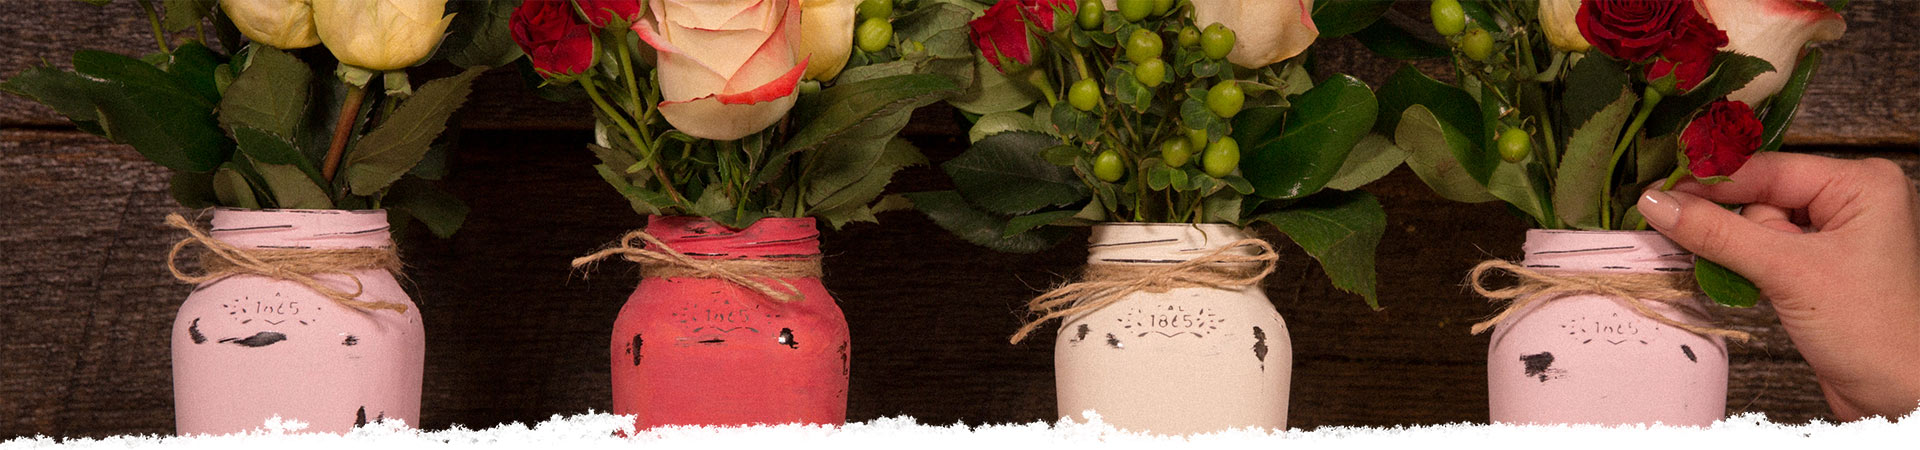 How To Repurpose Your Bertolli<sup>®</sup> Jars Into Flower Vases